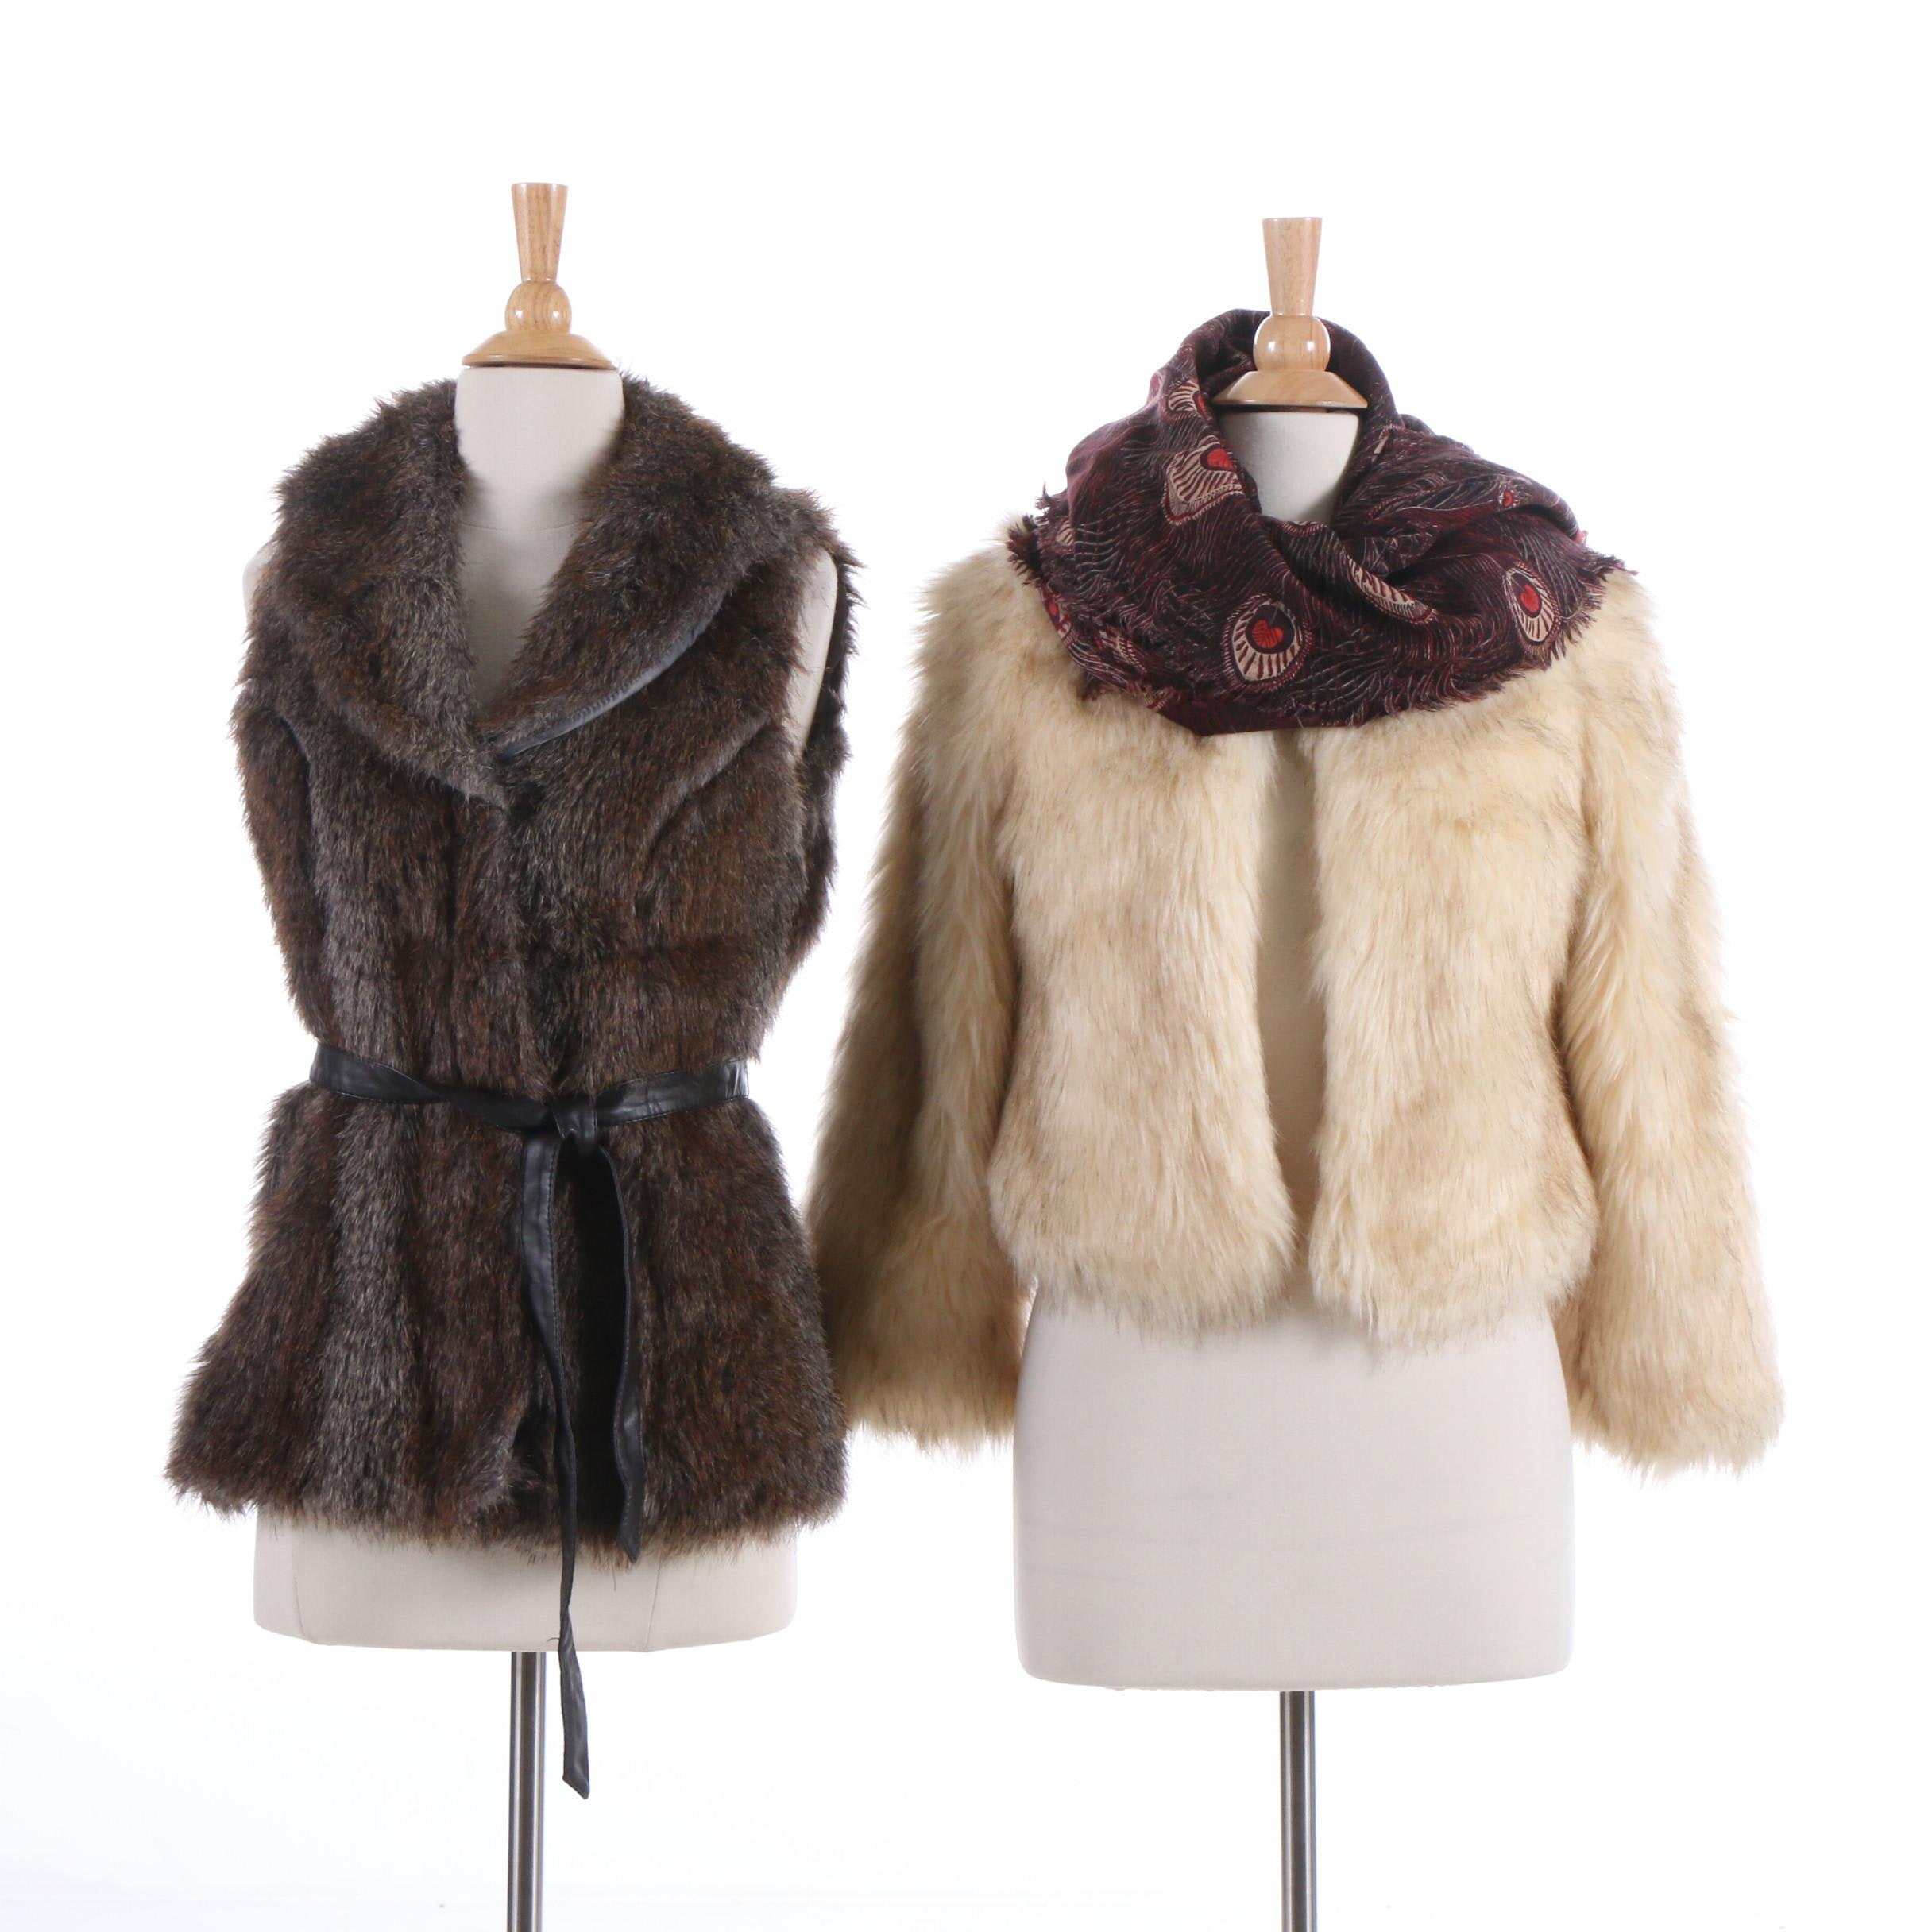 Skies Are Blue and Révue Faux Fur Vest Outerwear and Liberty of London Scarf